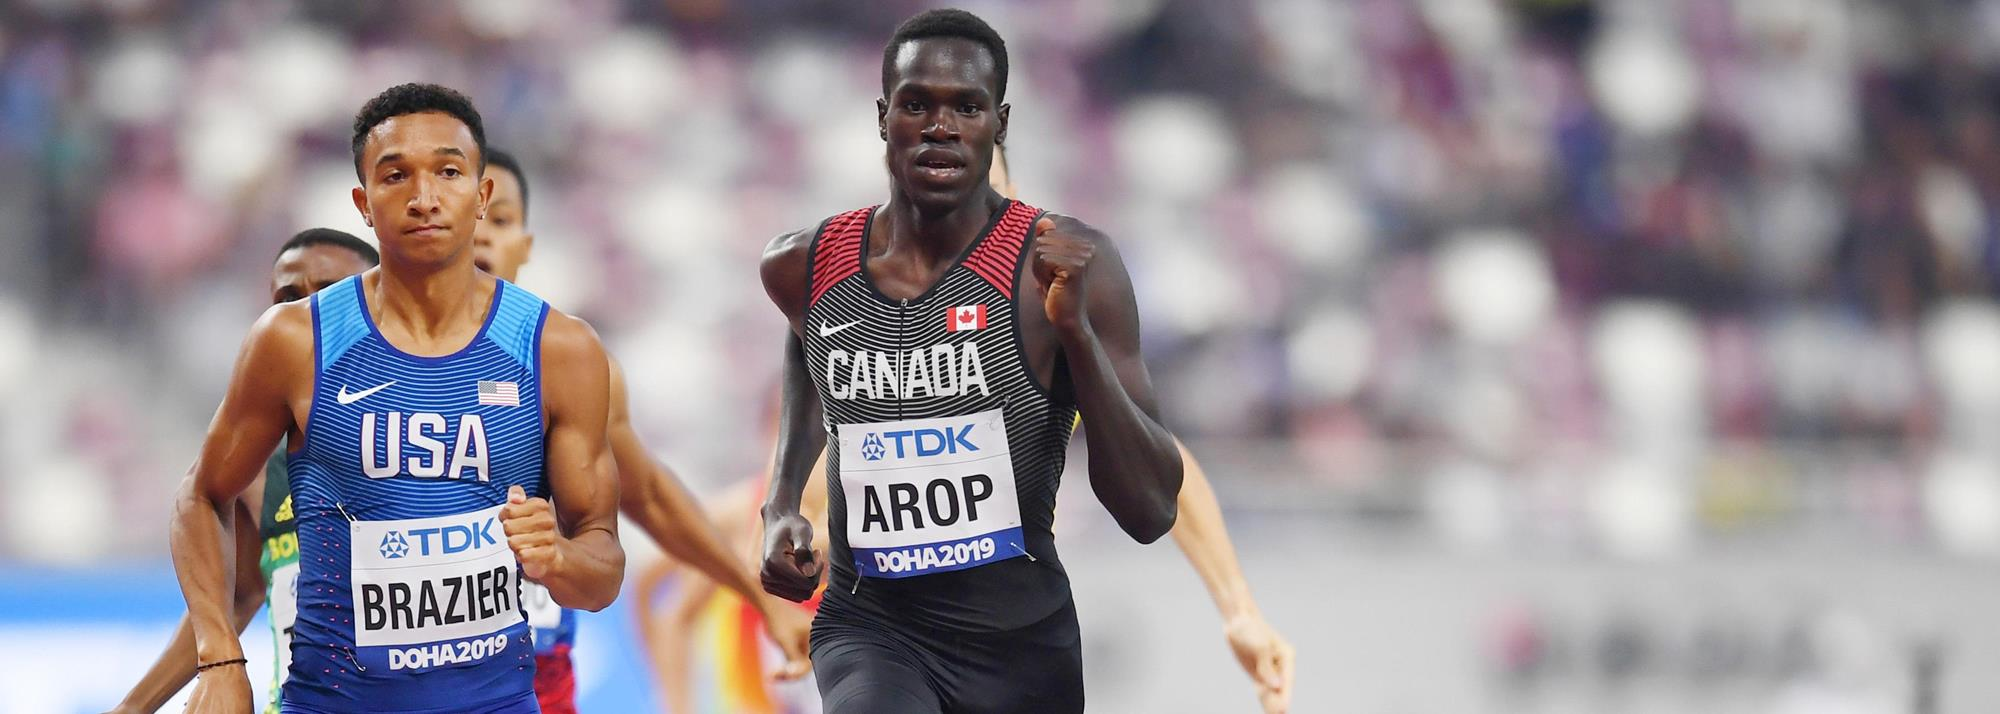 Canada's Arop sets sights on Tokyo